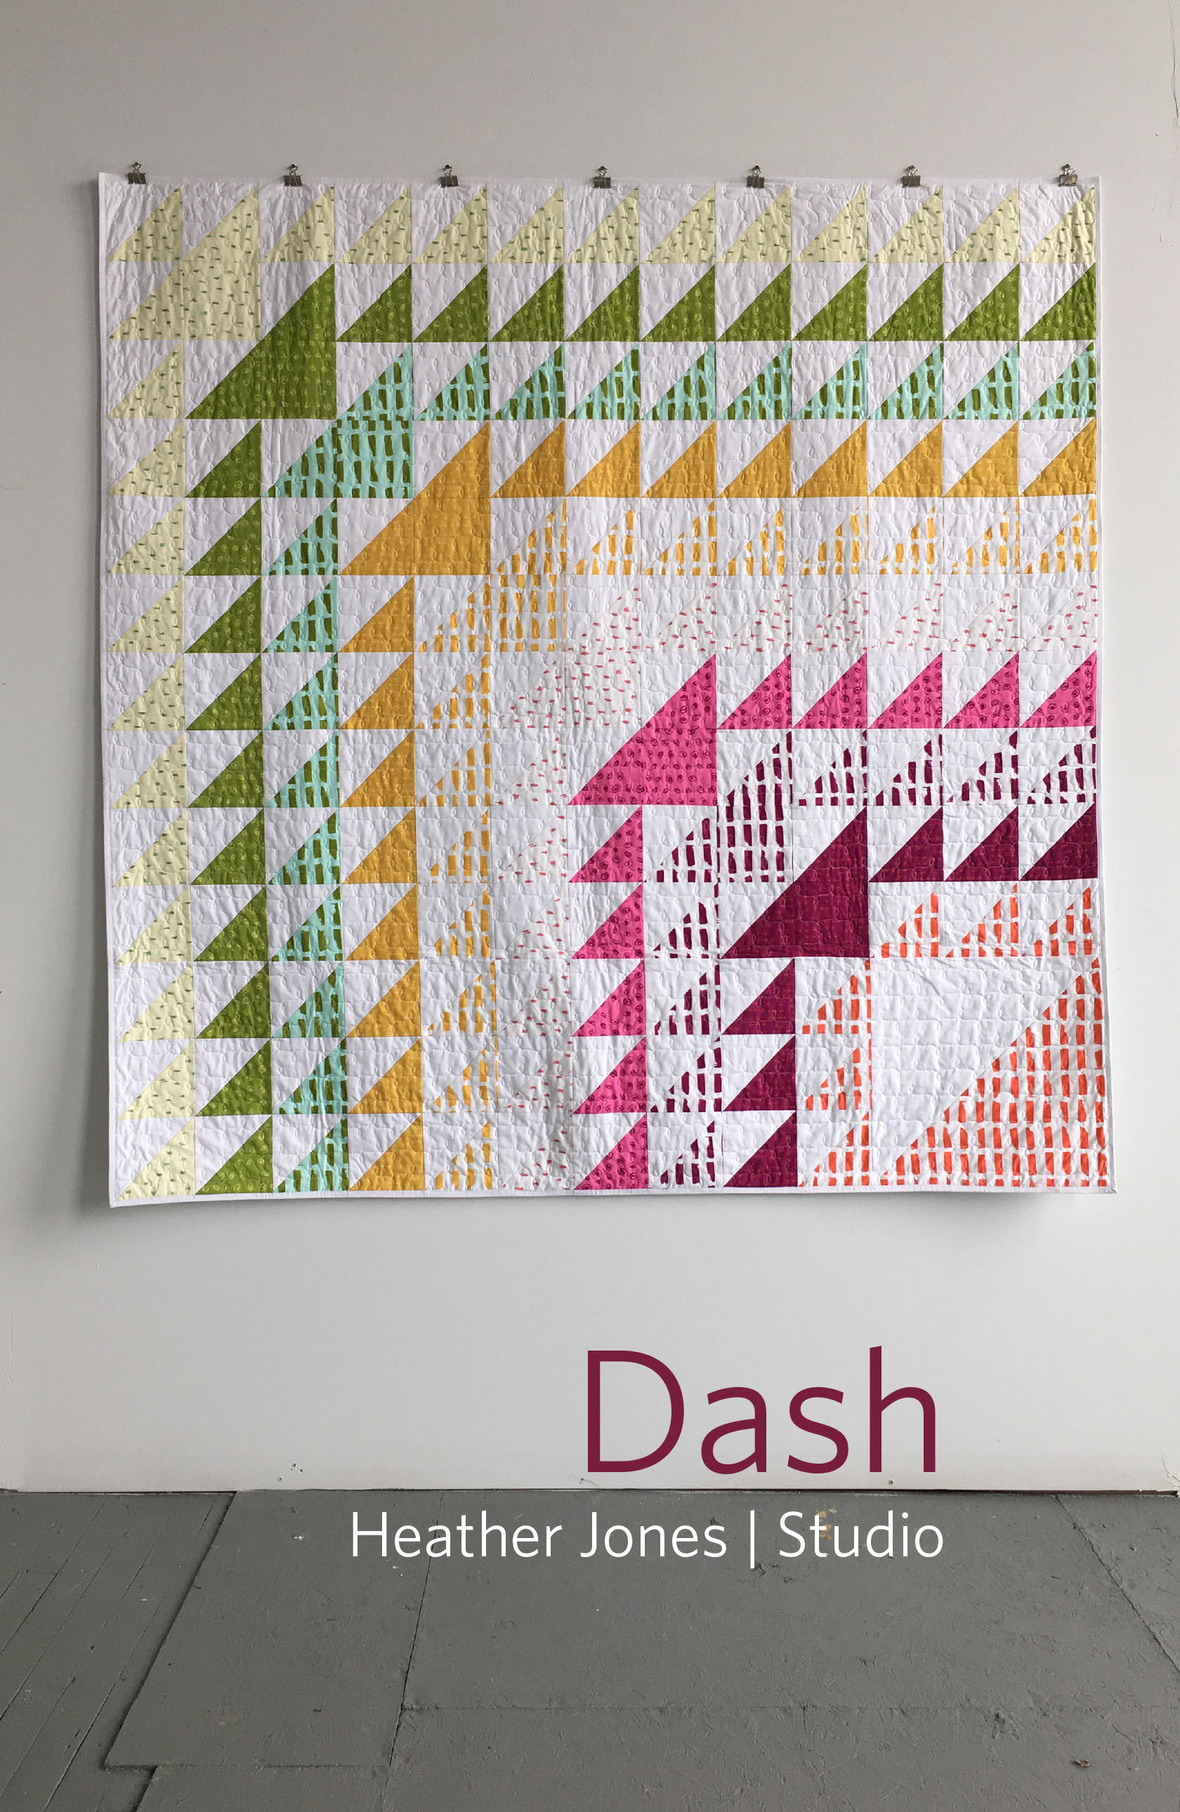 heather jones dash sewing pattern  1